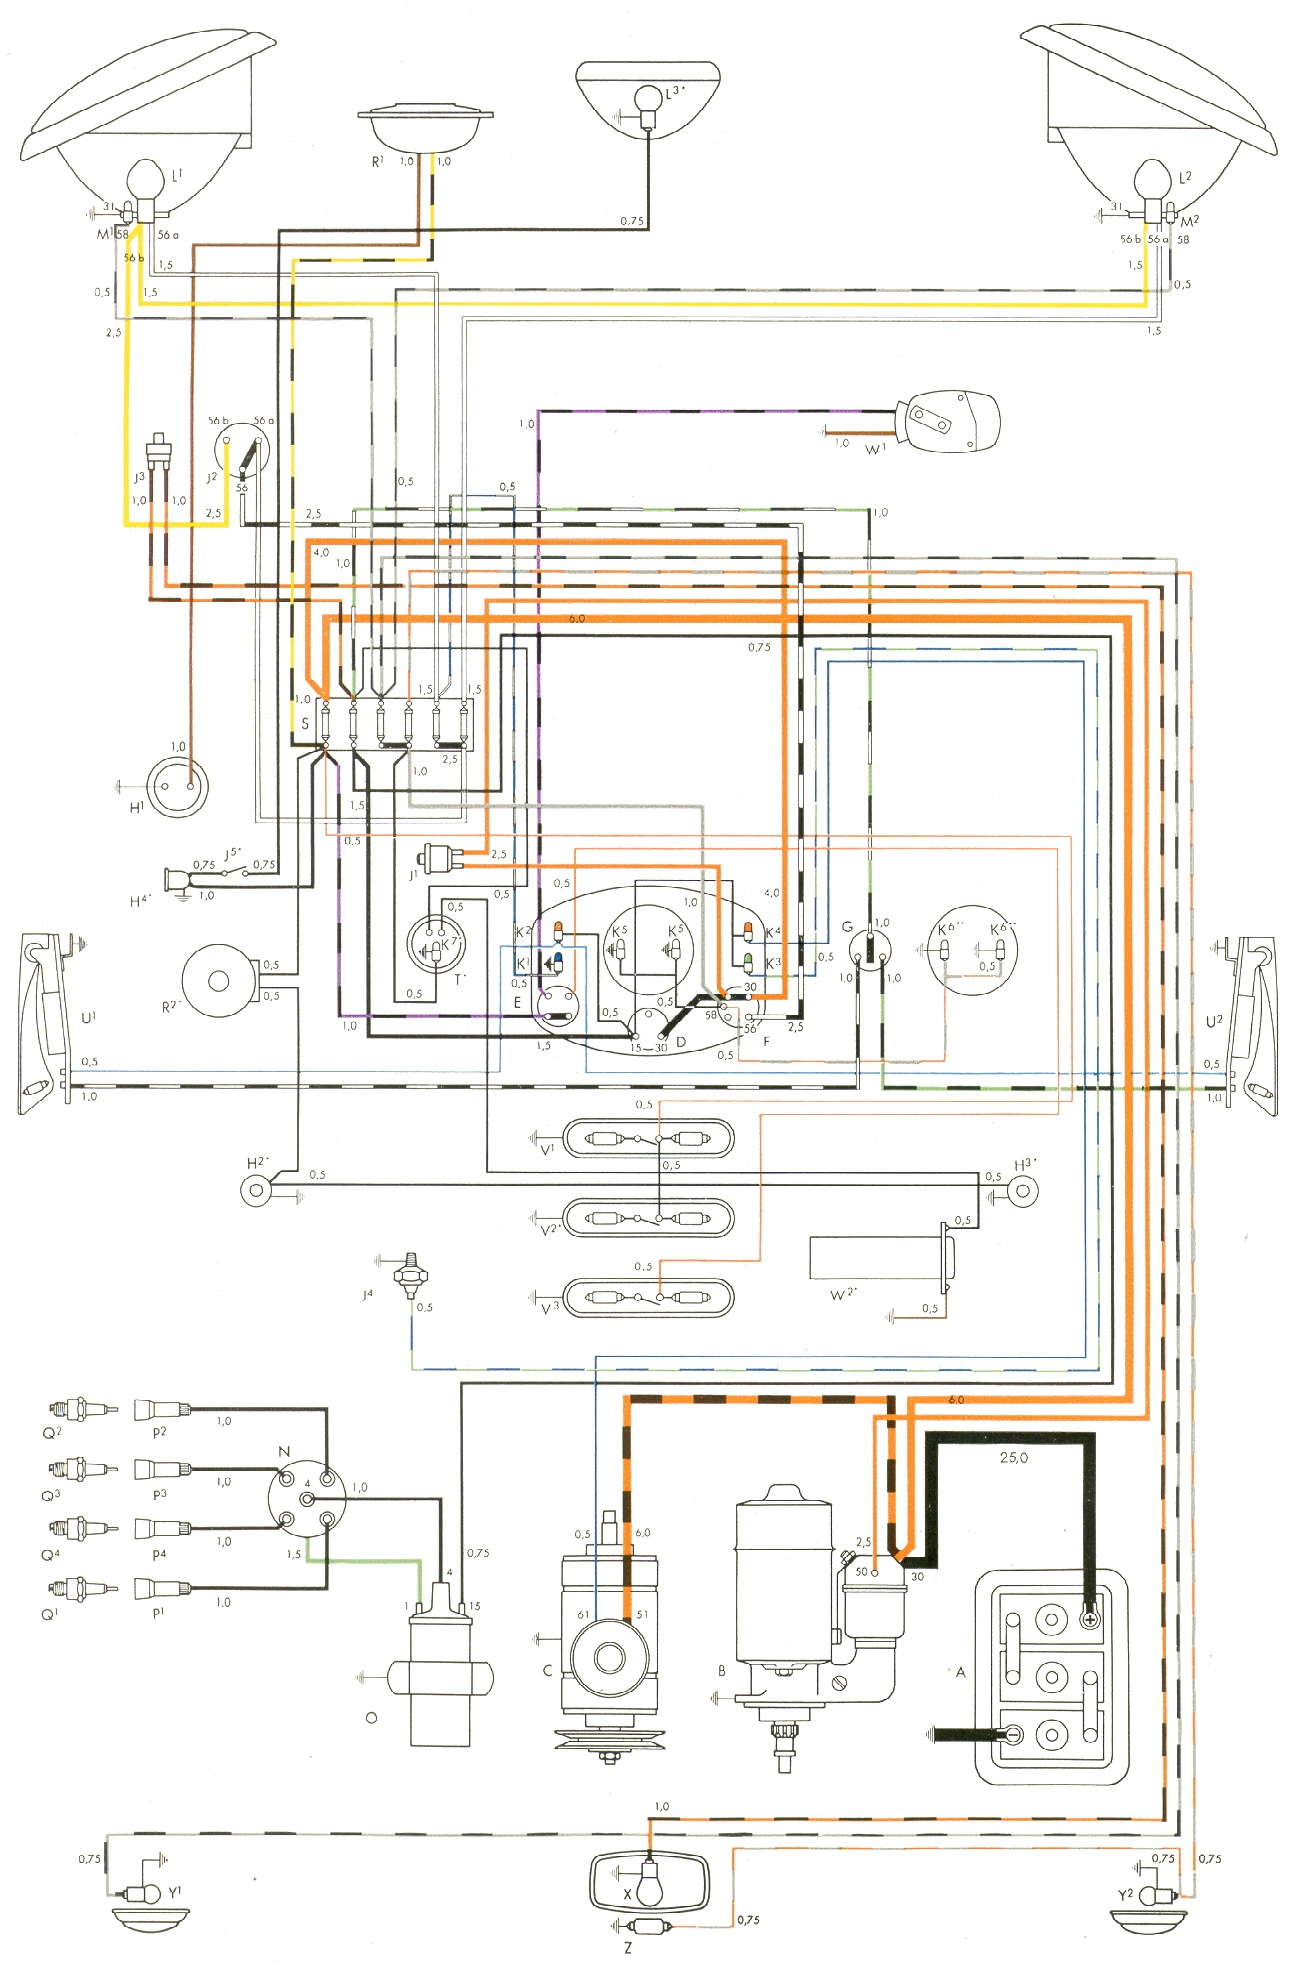 75 Super Beetle Wiring Diagram Get Free Image About Furnace Older Http Wwwdiychatroomcom F17 2000 Vw Harness Install Car Diagrams Explained U2022 Rh Ethermag Co